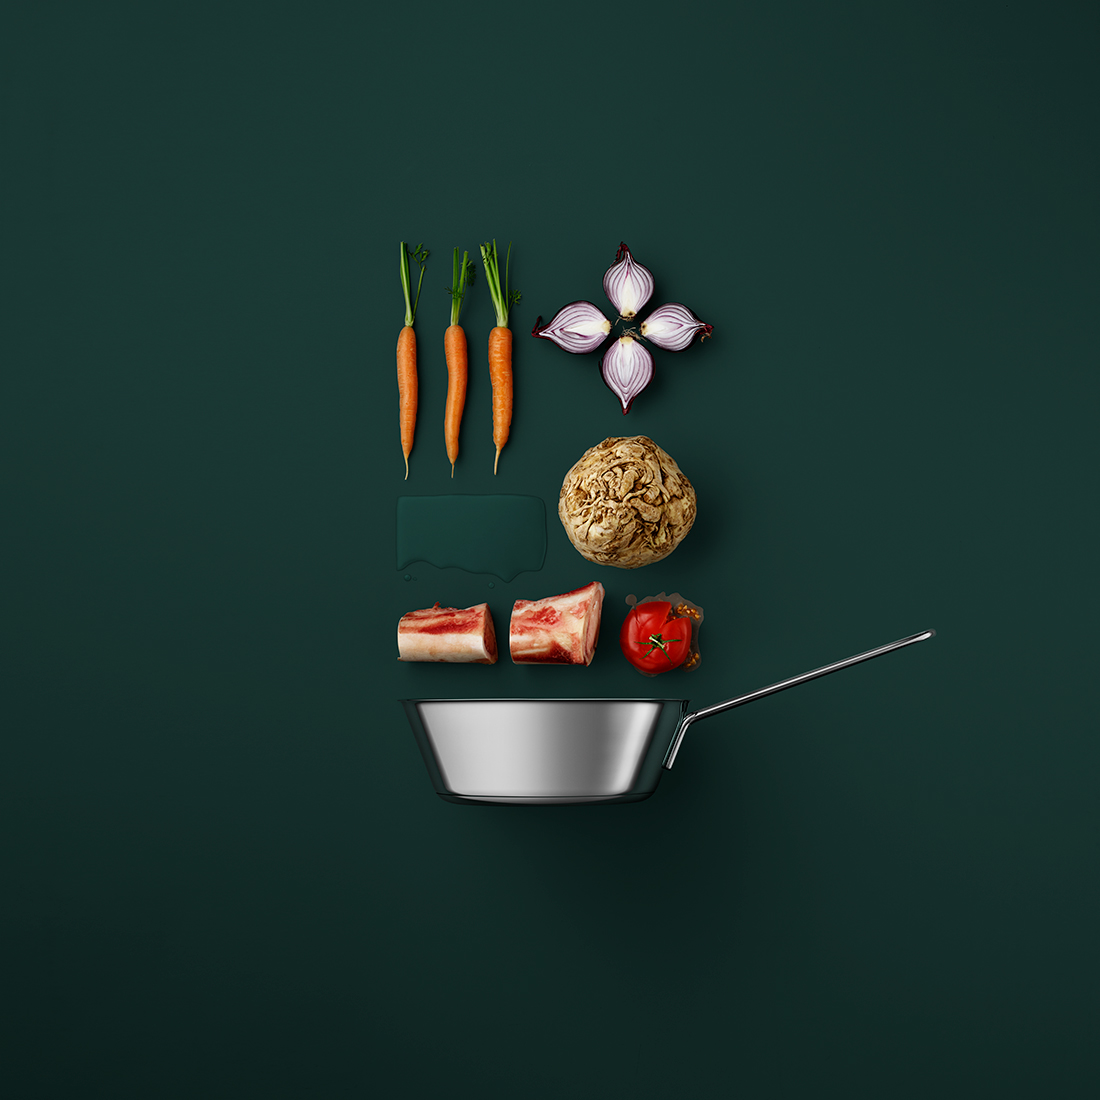 All photos © Mikkel Jul Hvilshoj   In a shoot for Nordic cookware brand Eva, Copenhagen-based p